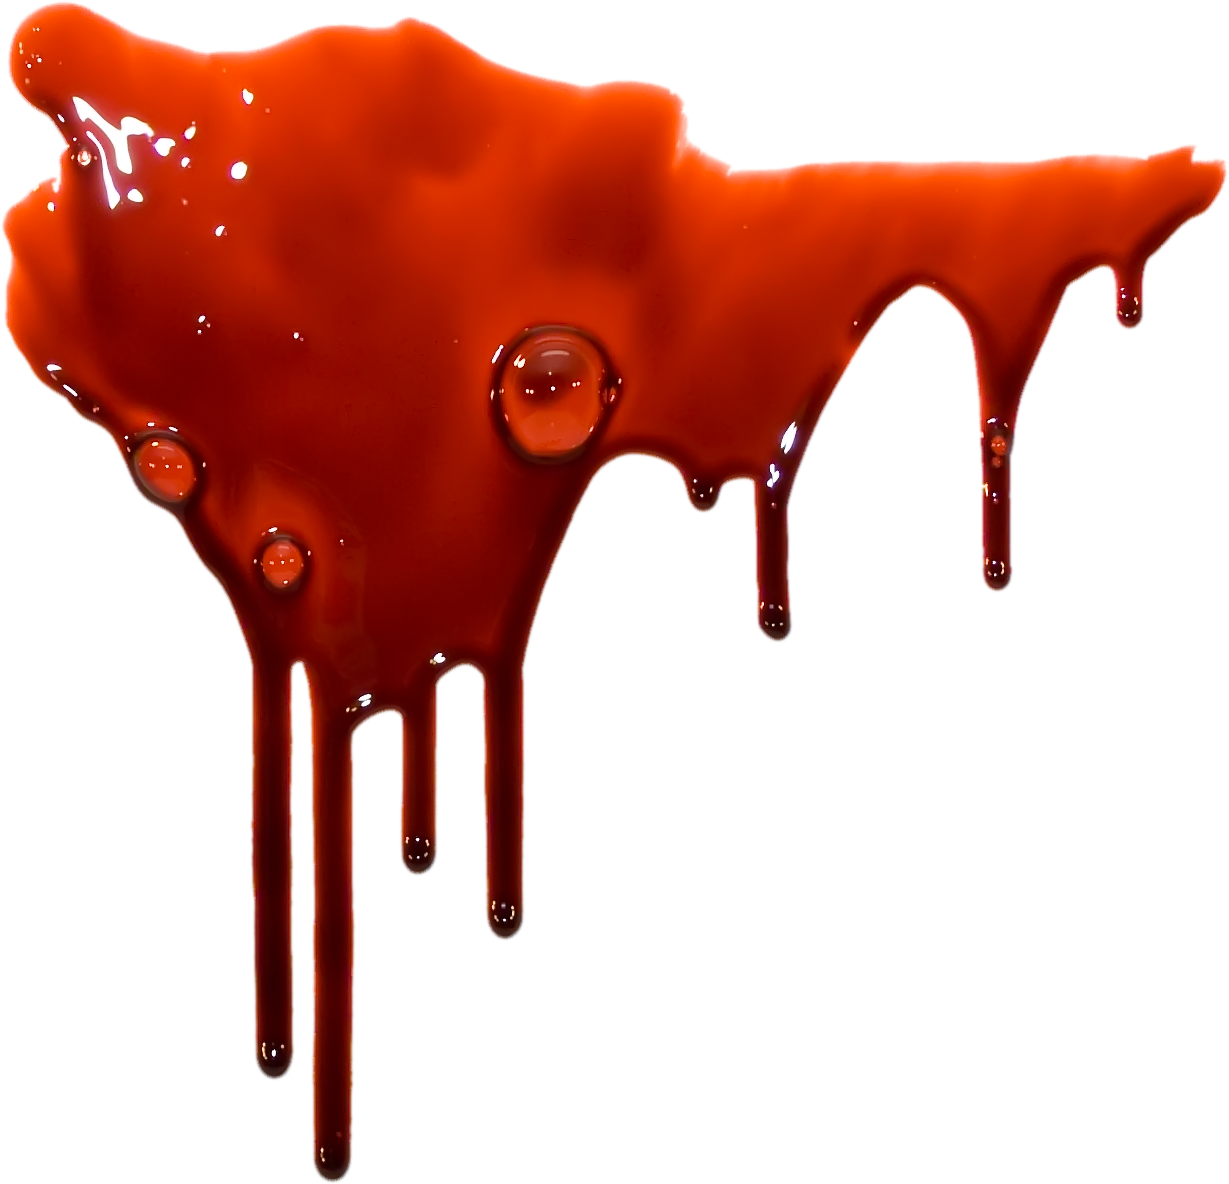 Blood png for photoshop. Images free download splashes